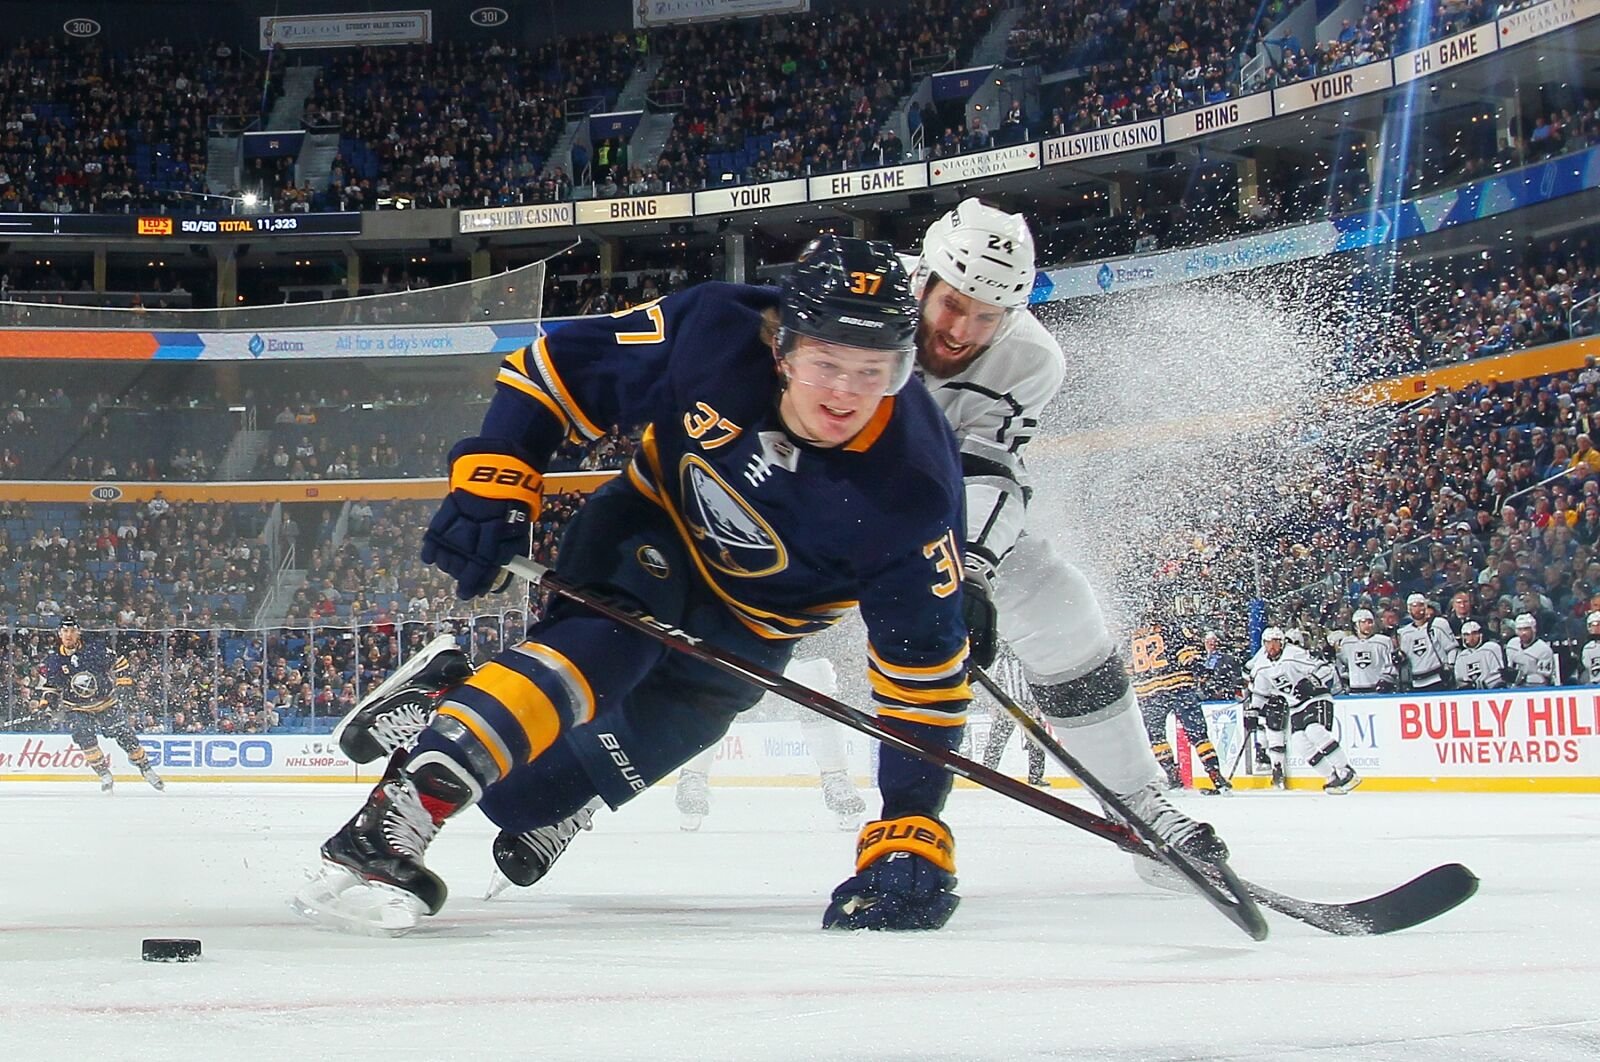 Buffalo Sabres: Thoughts From Sabres 3-0 Victory Over Kings